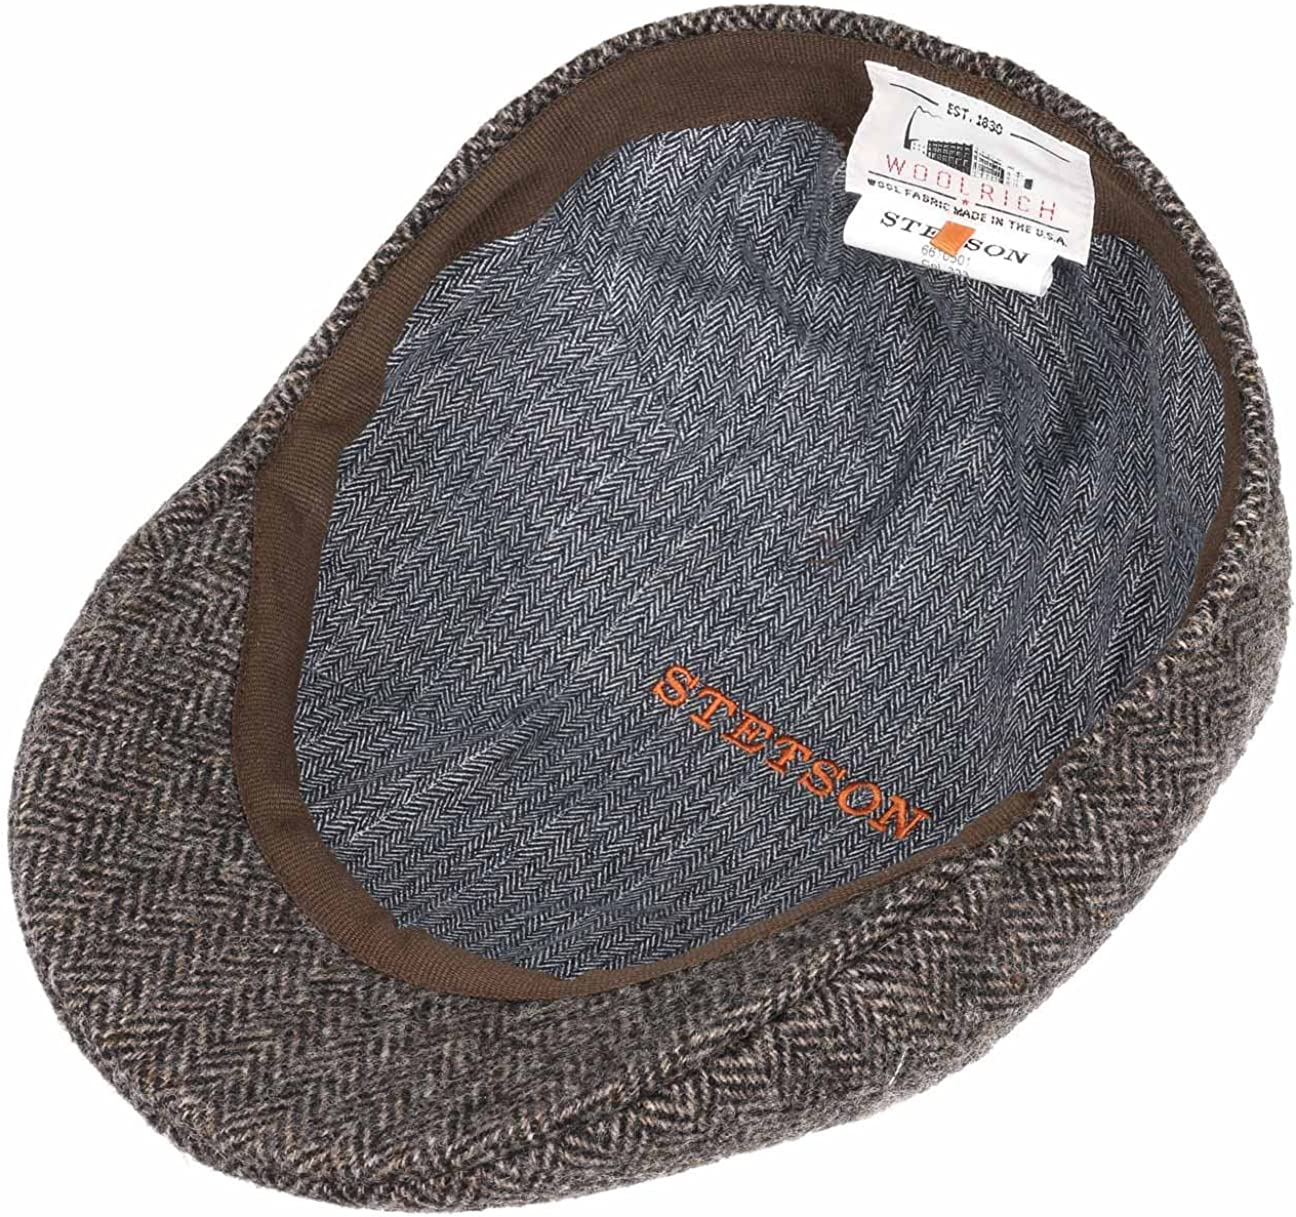 Stetson Gorra Texas Wool Herringbone Hombre - Made in The EU de ...